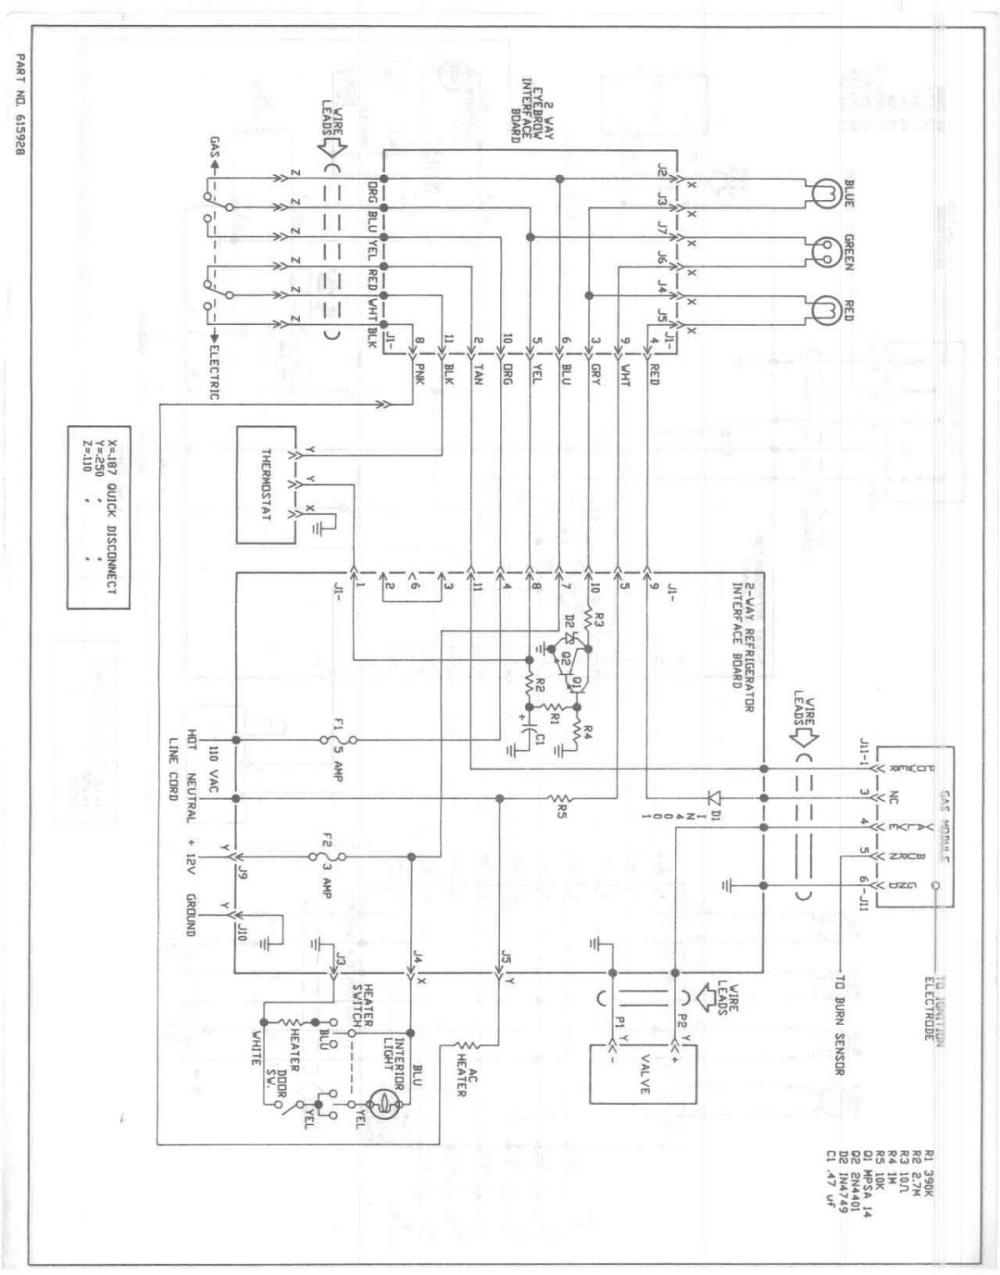 medium resolution of norcold wiring diagram schema wiring diagram norcold fridge wiring diagram